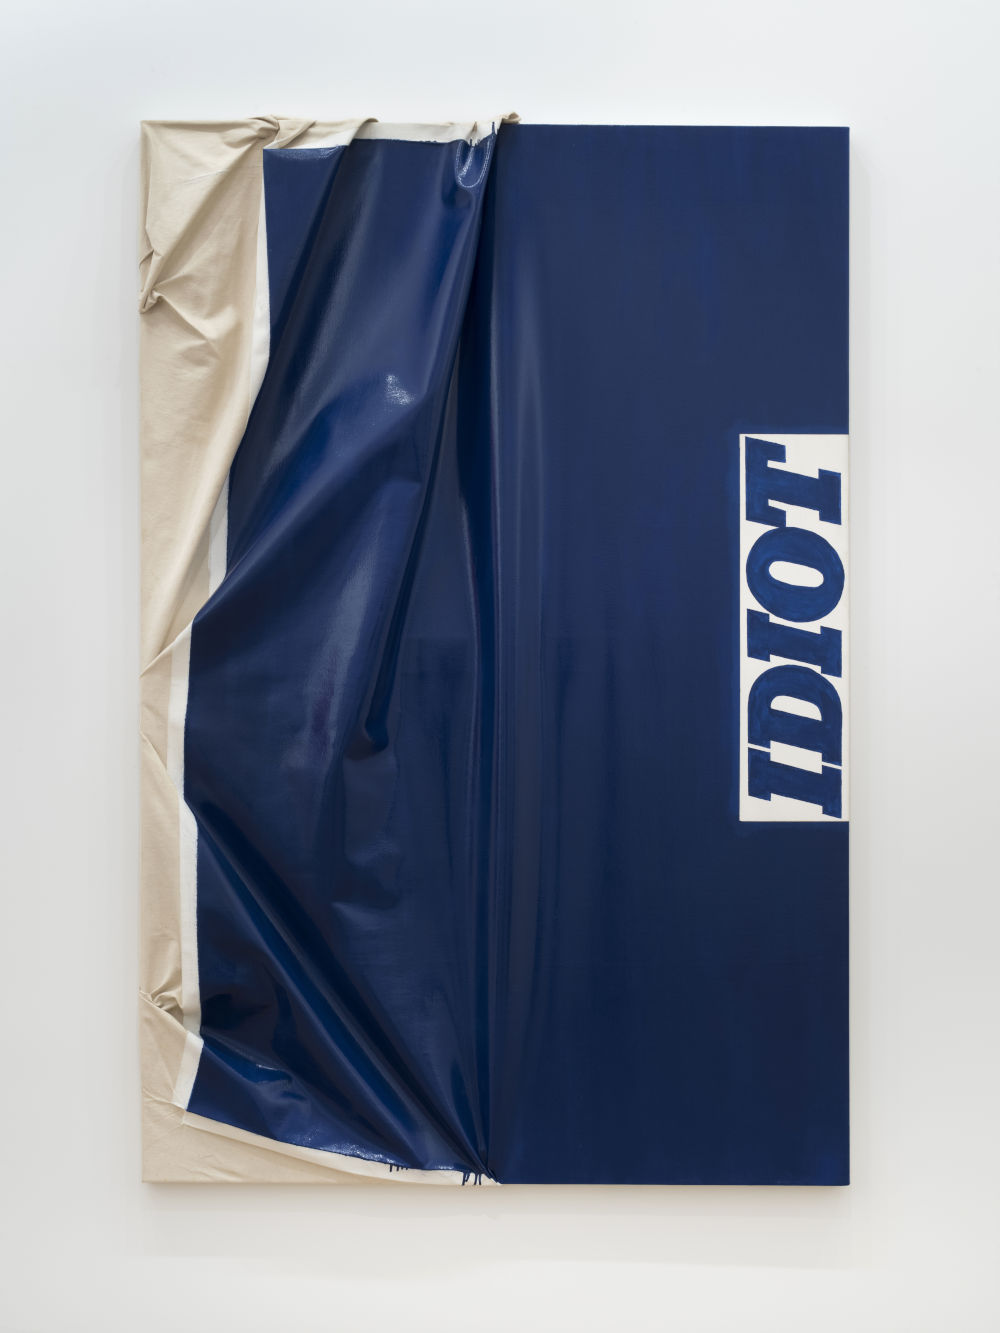 Steven Parrino, Blue Idiot, 1986. Acrylic and enamel on canvas 72 x 48 inches 182.9 x 121.9 cm. Signed, titled and dated Blue Idiot S. Parrino 1986 (on the stretcher); stamped STEVEN PARRINO (on lower right edge)